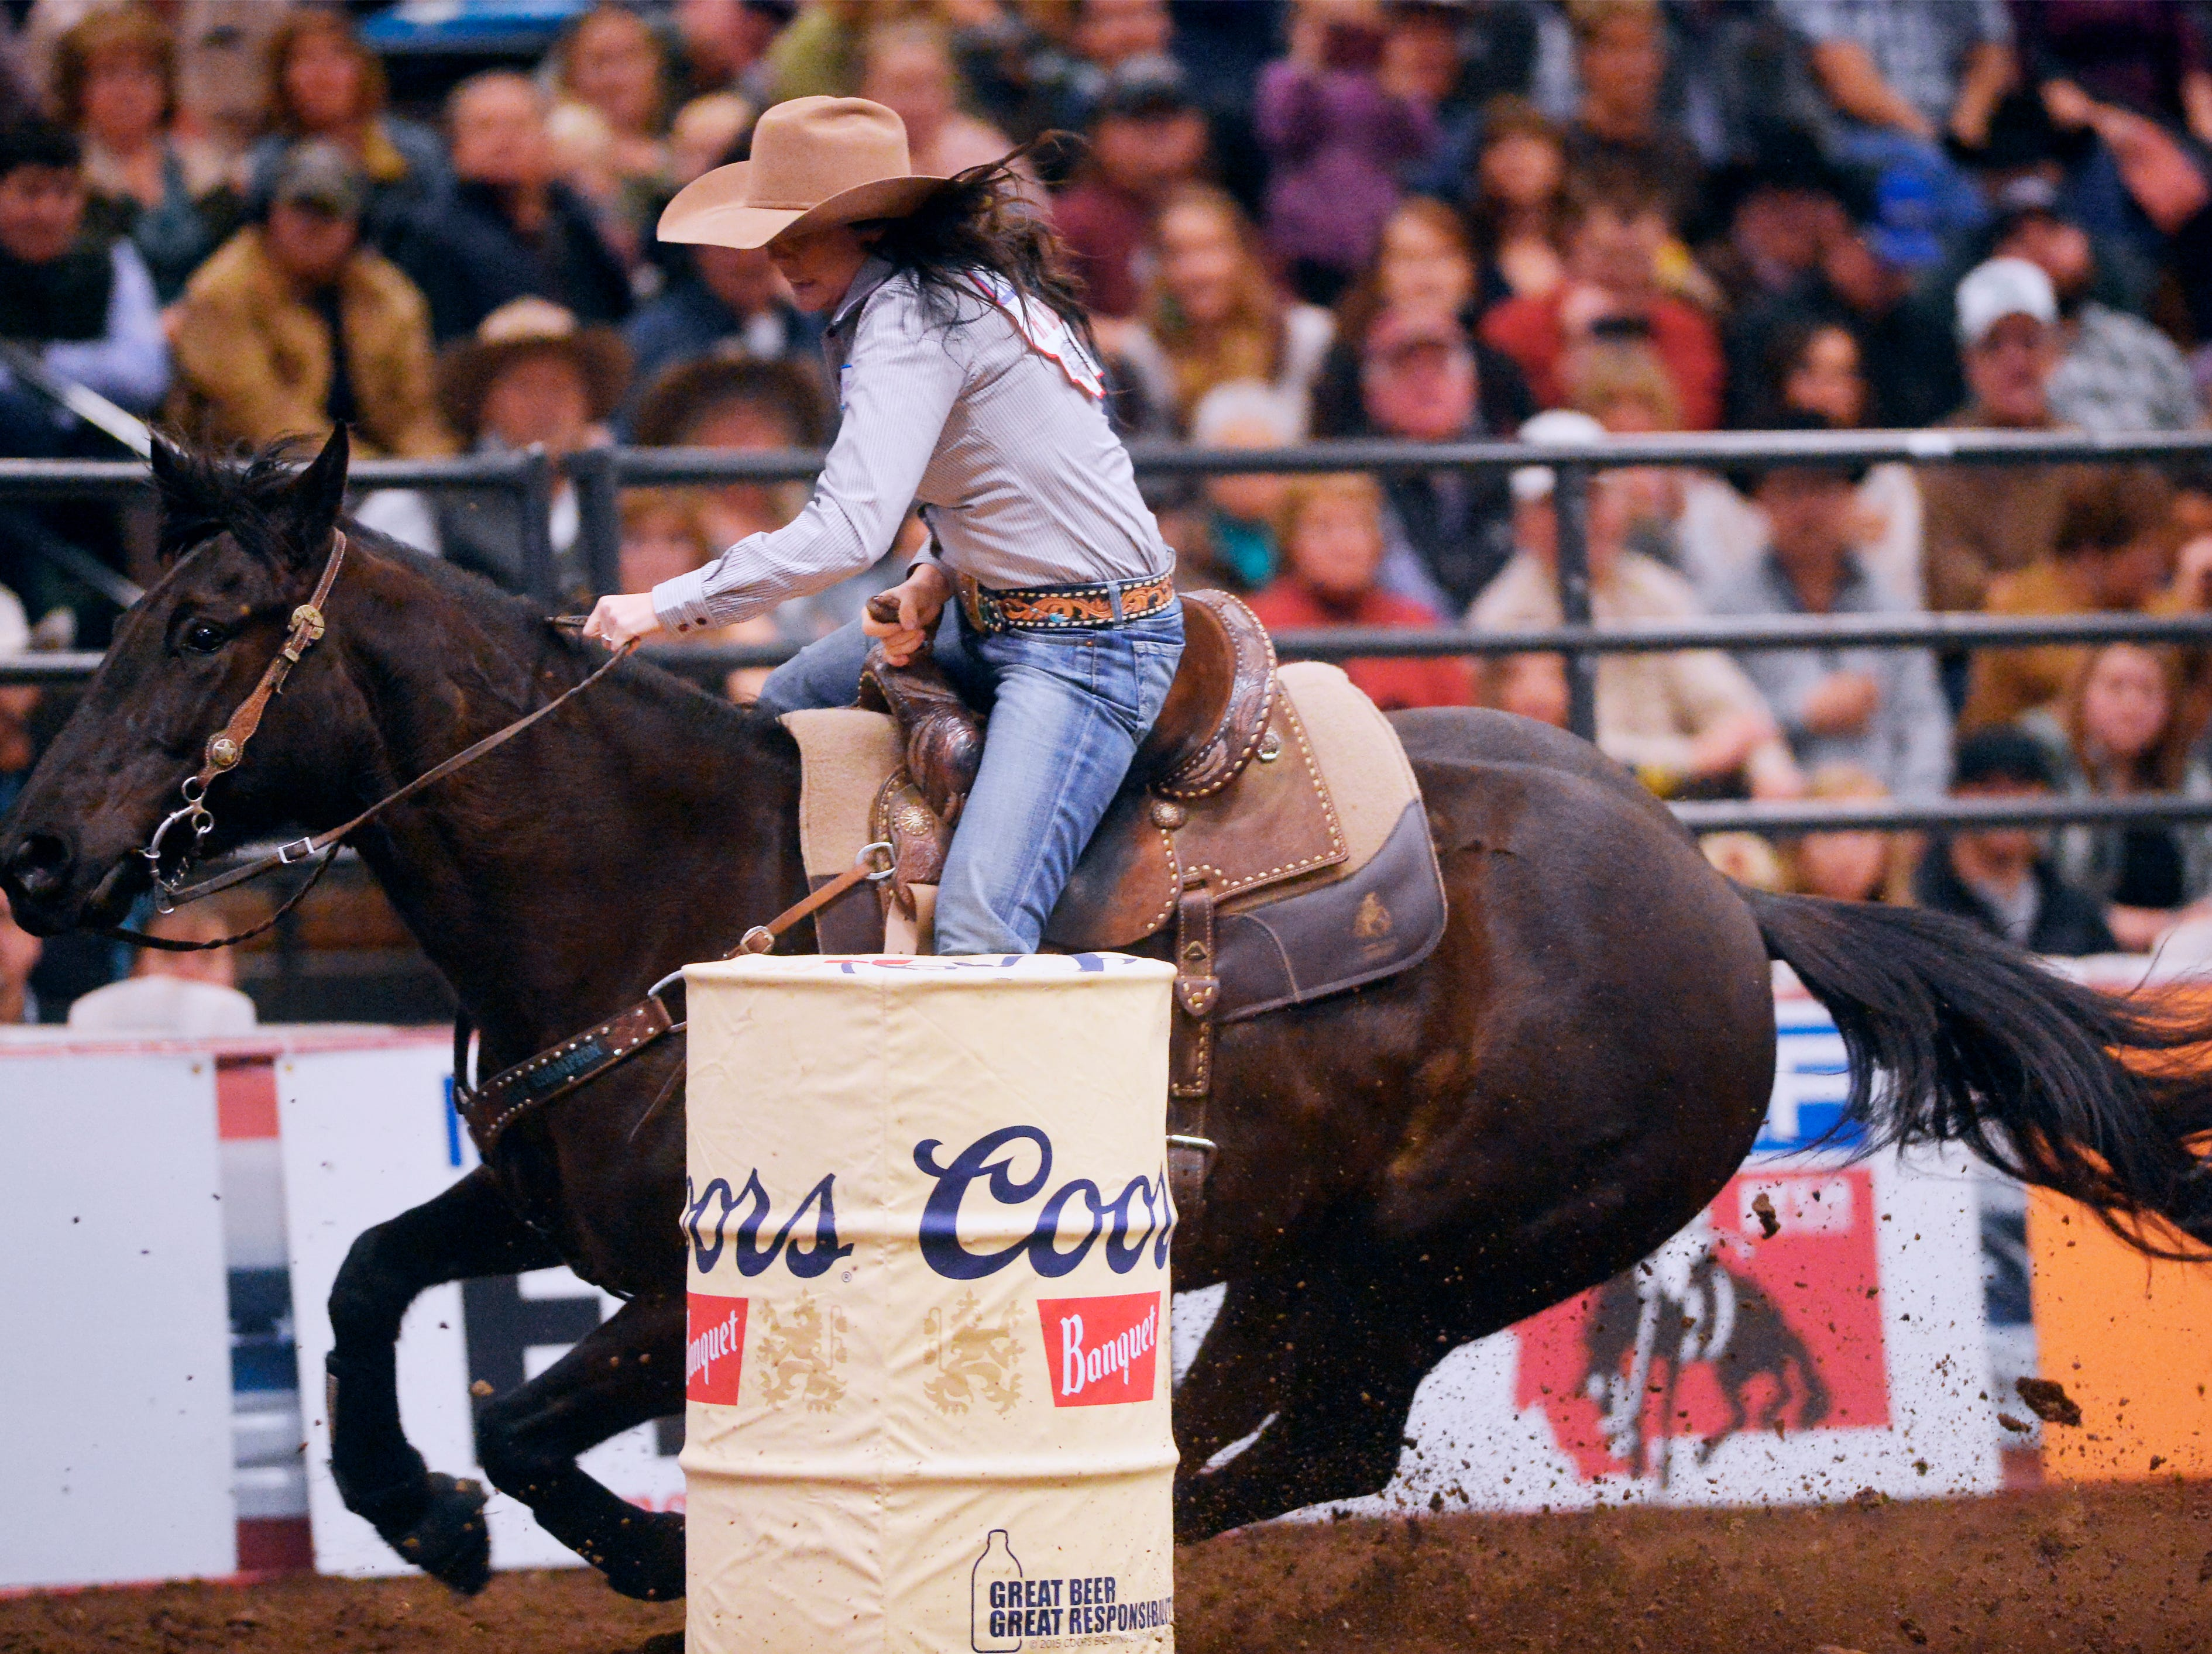 Heather Crowley attemtps her second barrel in the barrel racing event during the Montana Pro Rodeo Circuit Finals in the Pacific Steel and Recycling Four Seasons Arena, Friday, January 11, 2019.